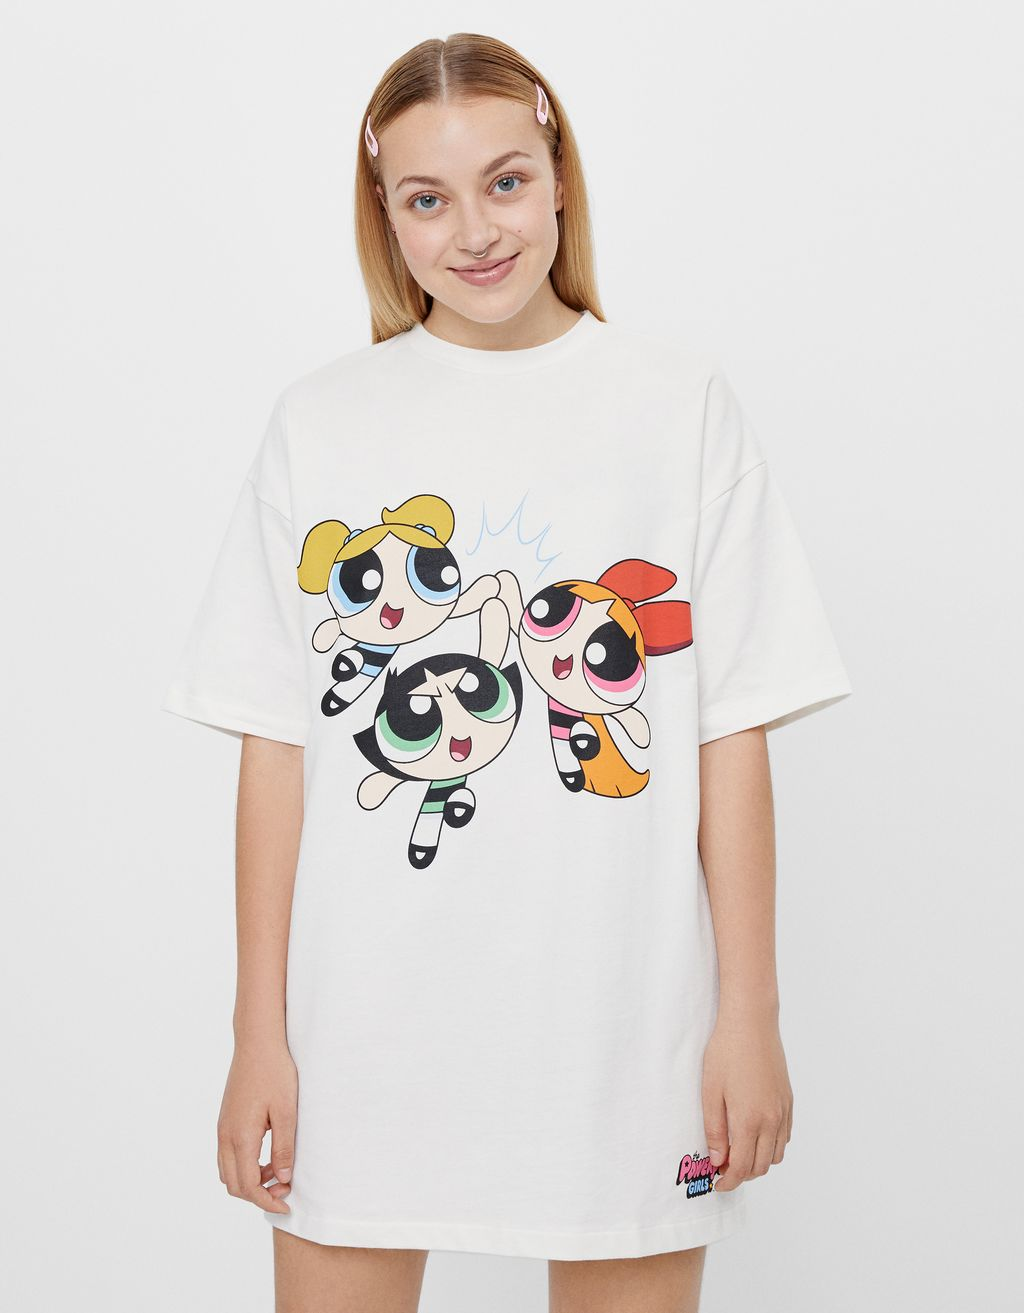 Powerpuff Girls T-shirt dress